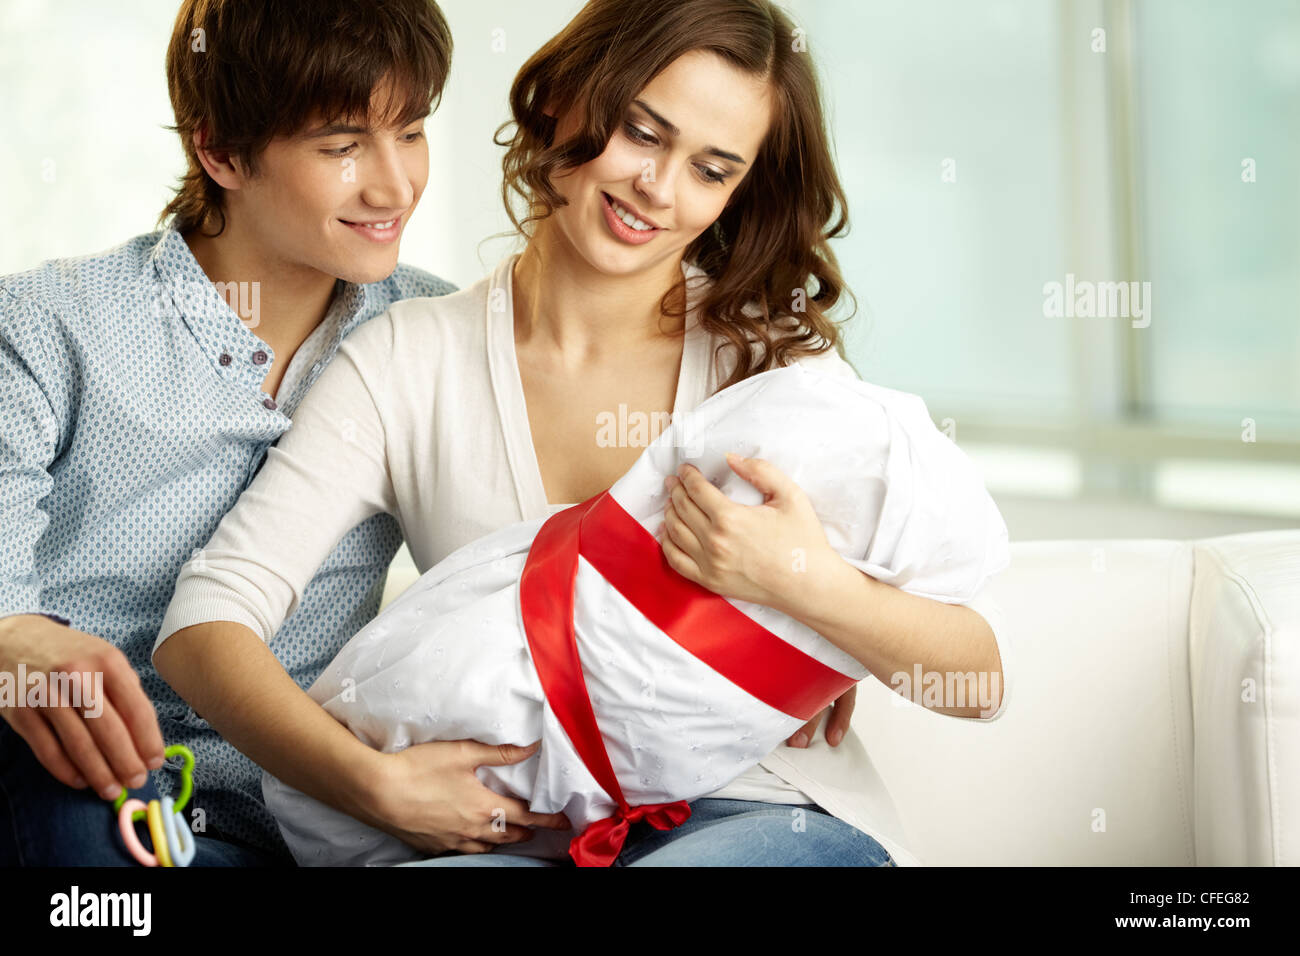 Young woman holding her newborn baby in, her husband smiling happily - Stock Image